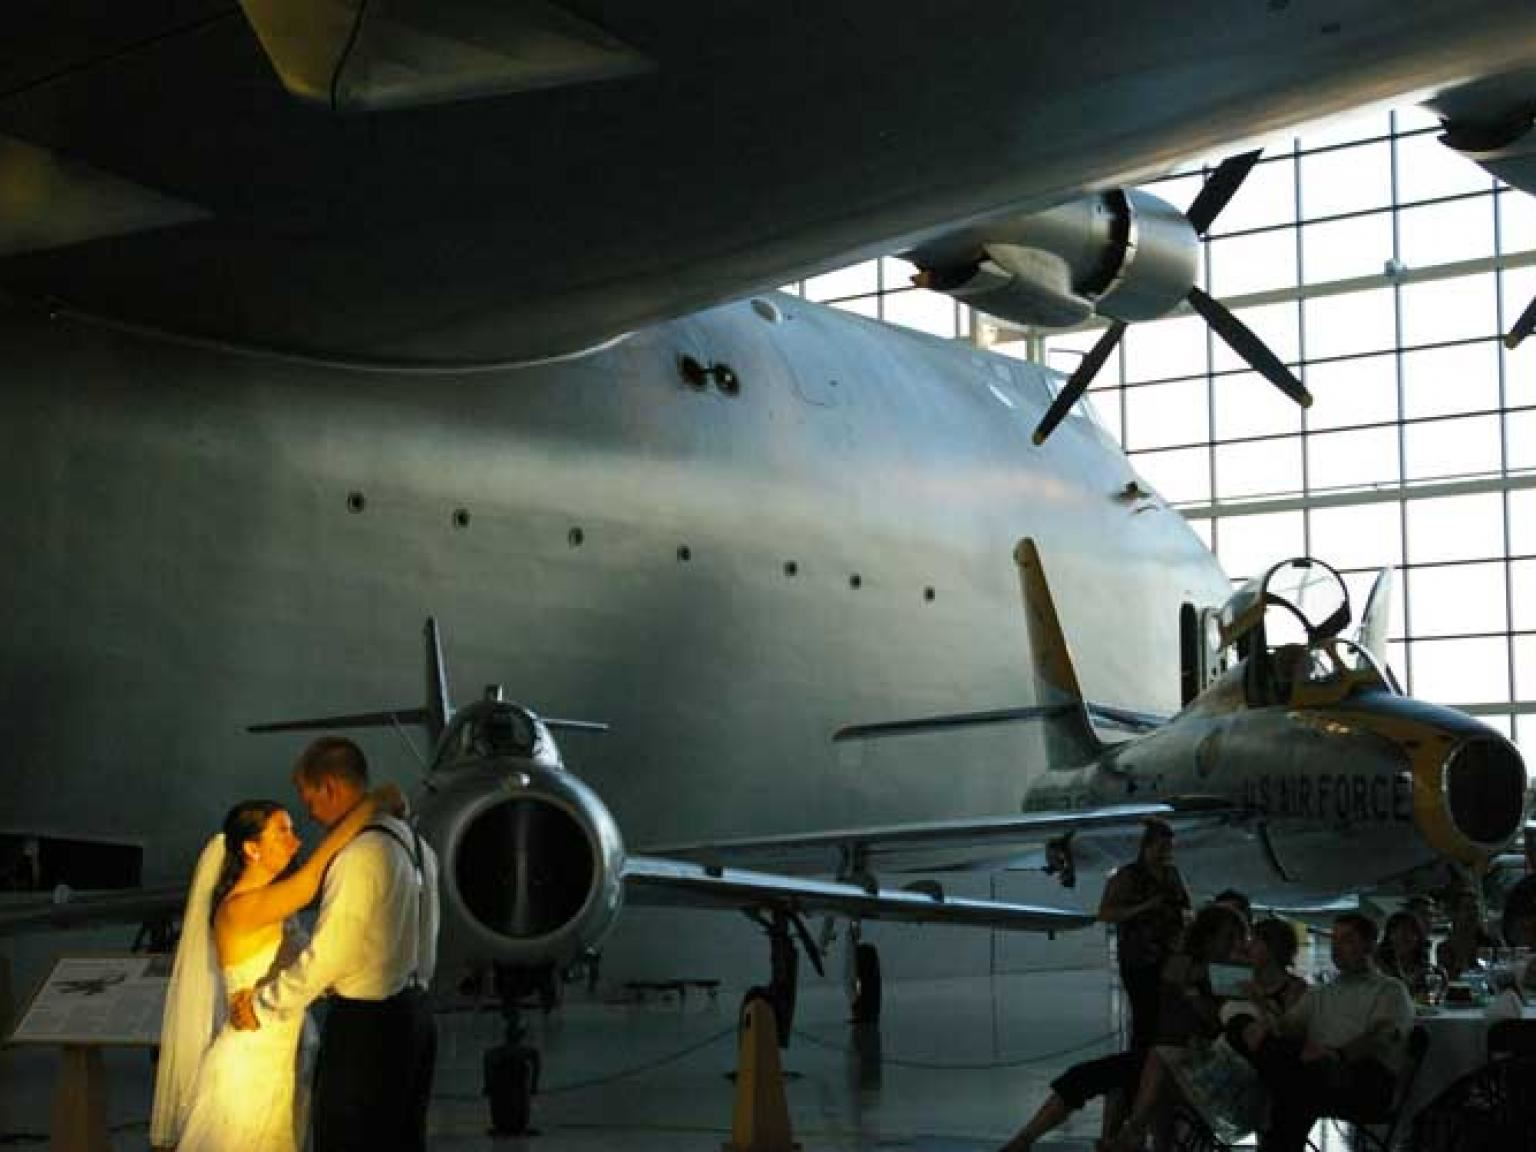 Evergreen Aviation & Space Museum - 7